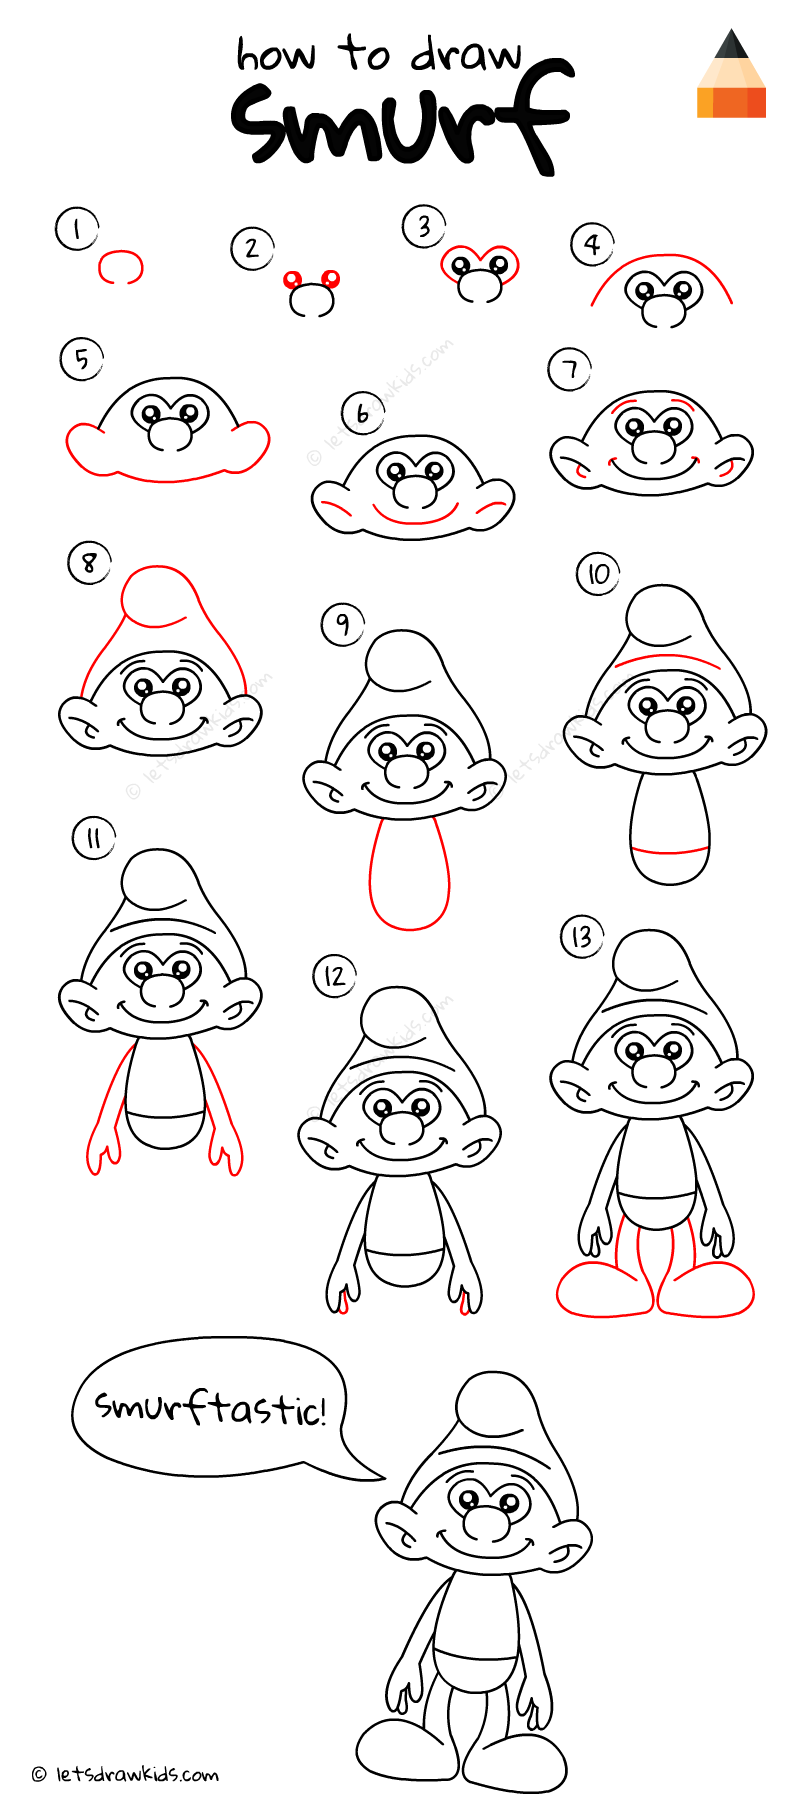 easy disney characters to draw step by step how to draw stitch from lilo and stitch with images to step by easy step characters disney draw